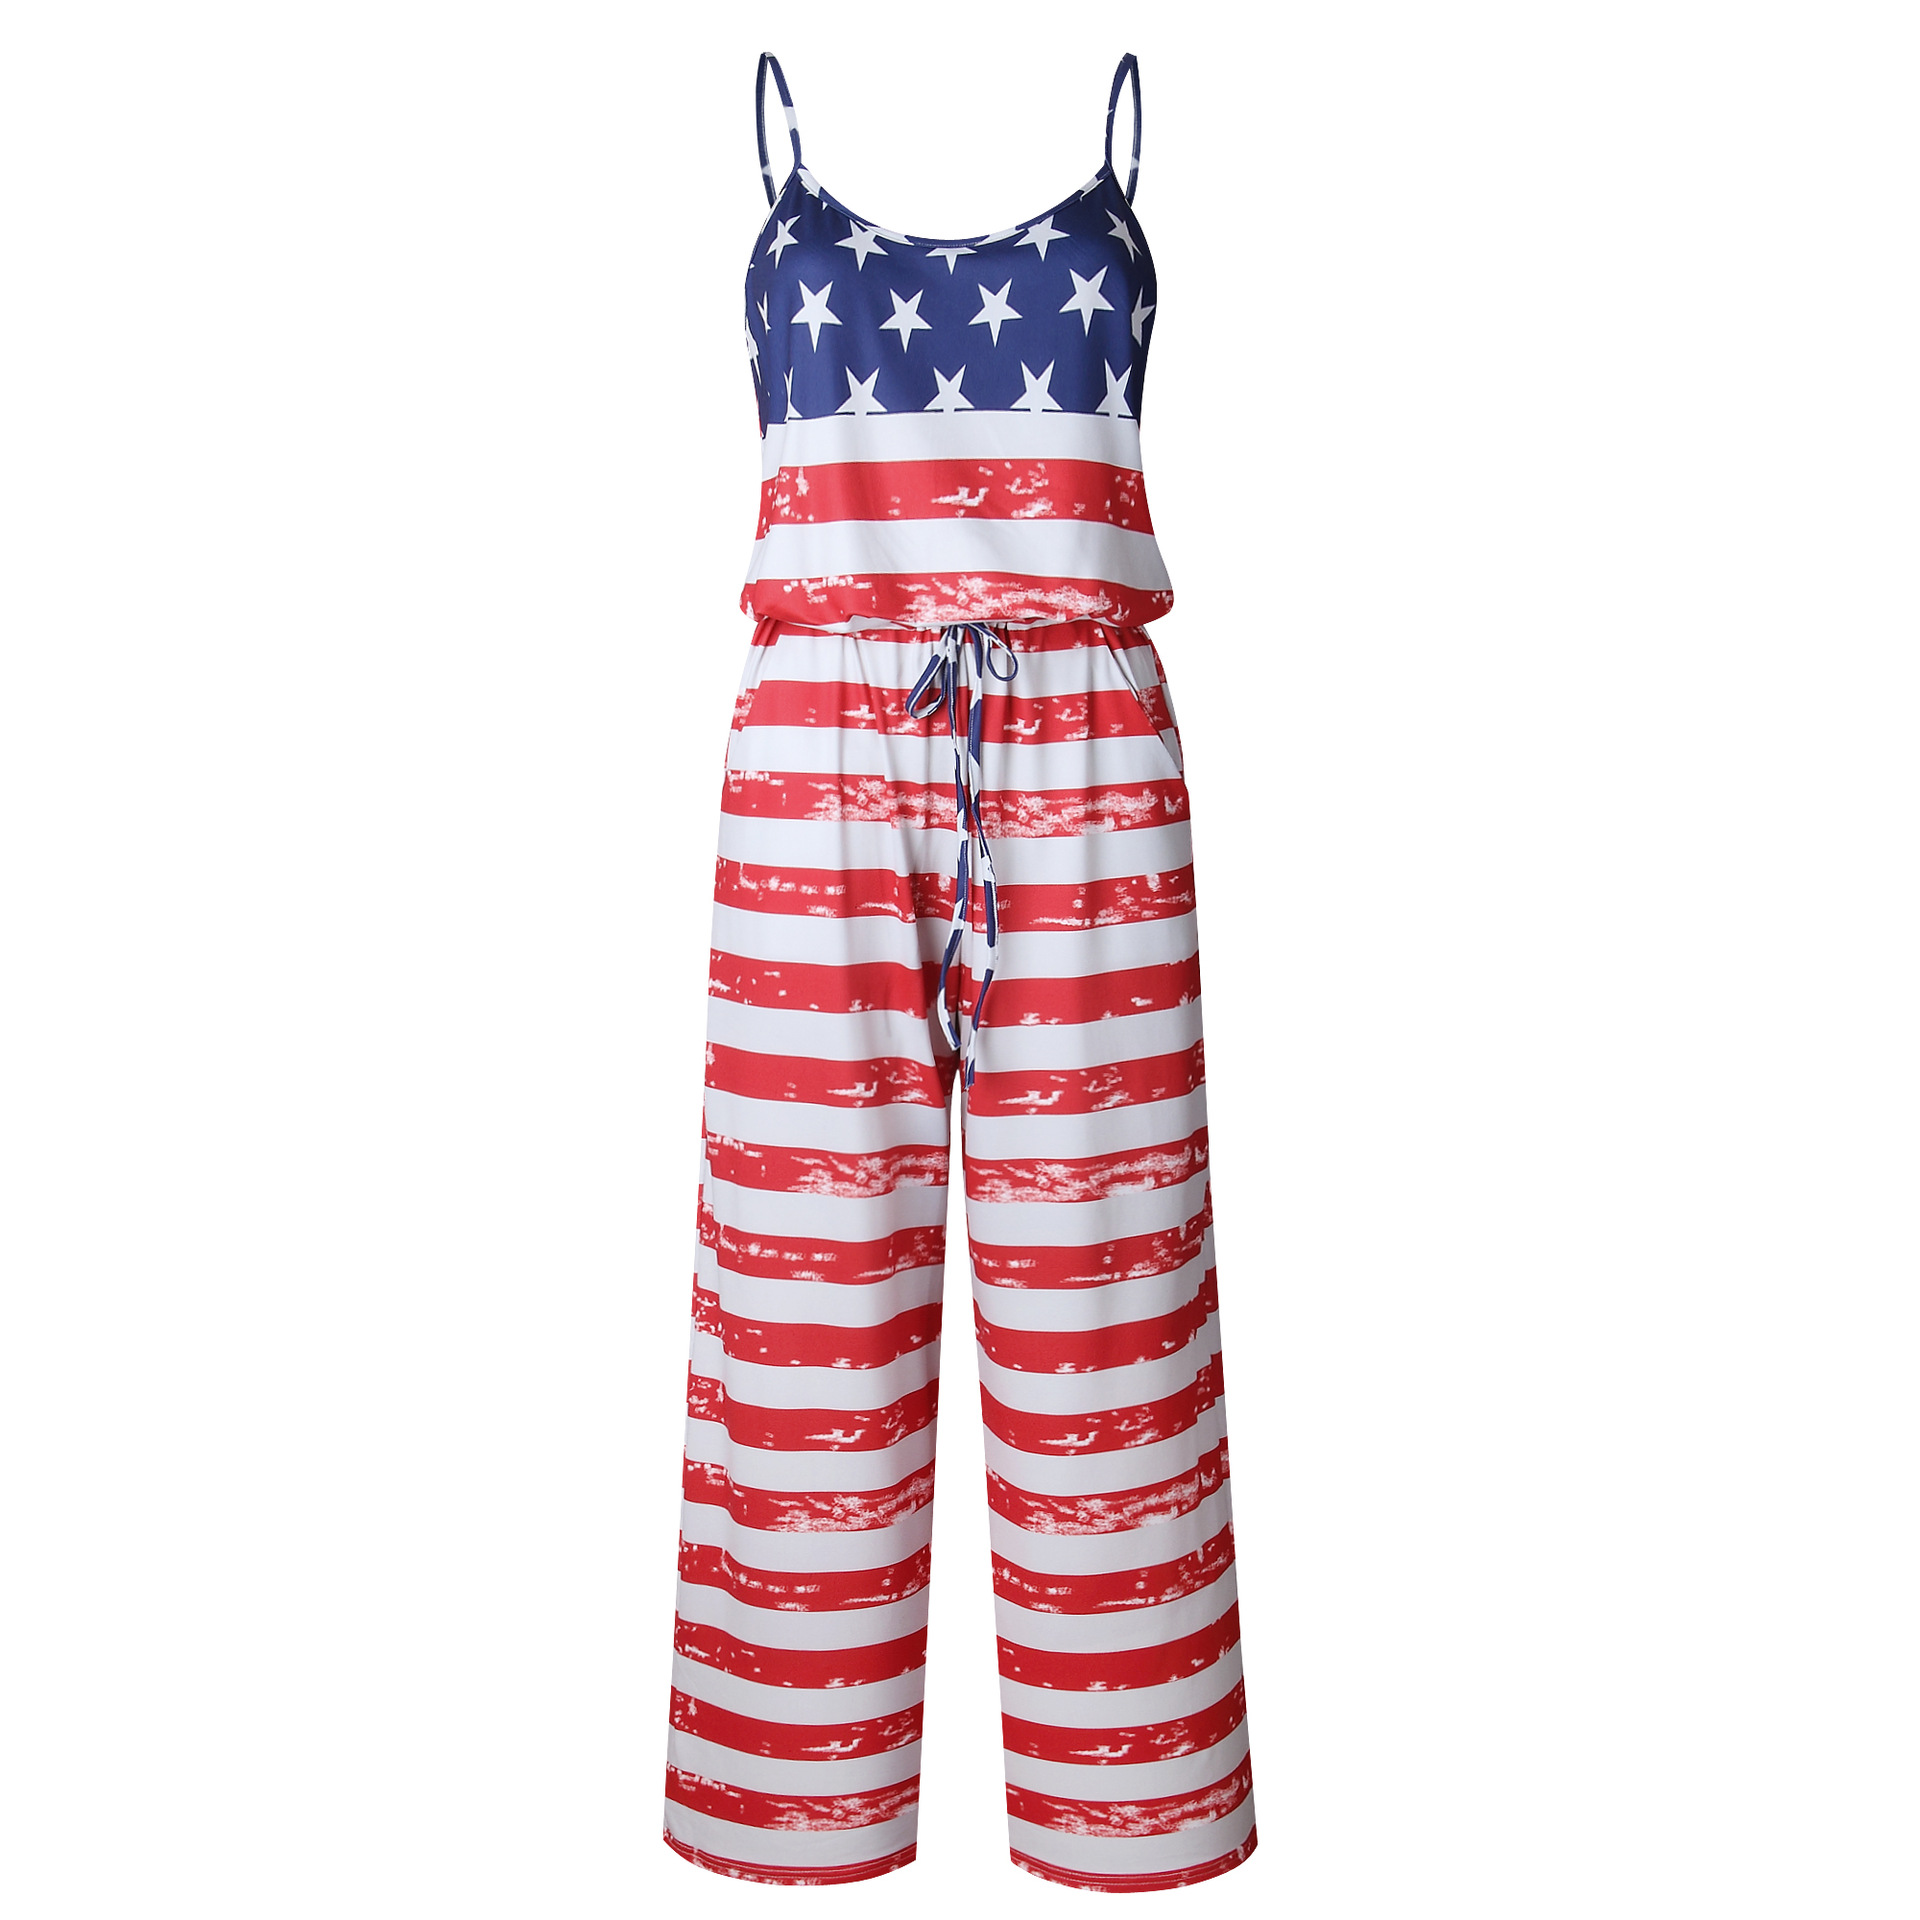 Spaghetti Strap Jumpsuit Women 2018 Summer Long Pants Floral Print Rompers Beach Casual Jumpsuits Sleeveless Sashes Playsuits 71